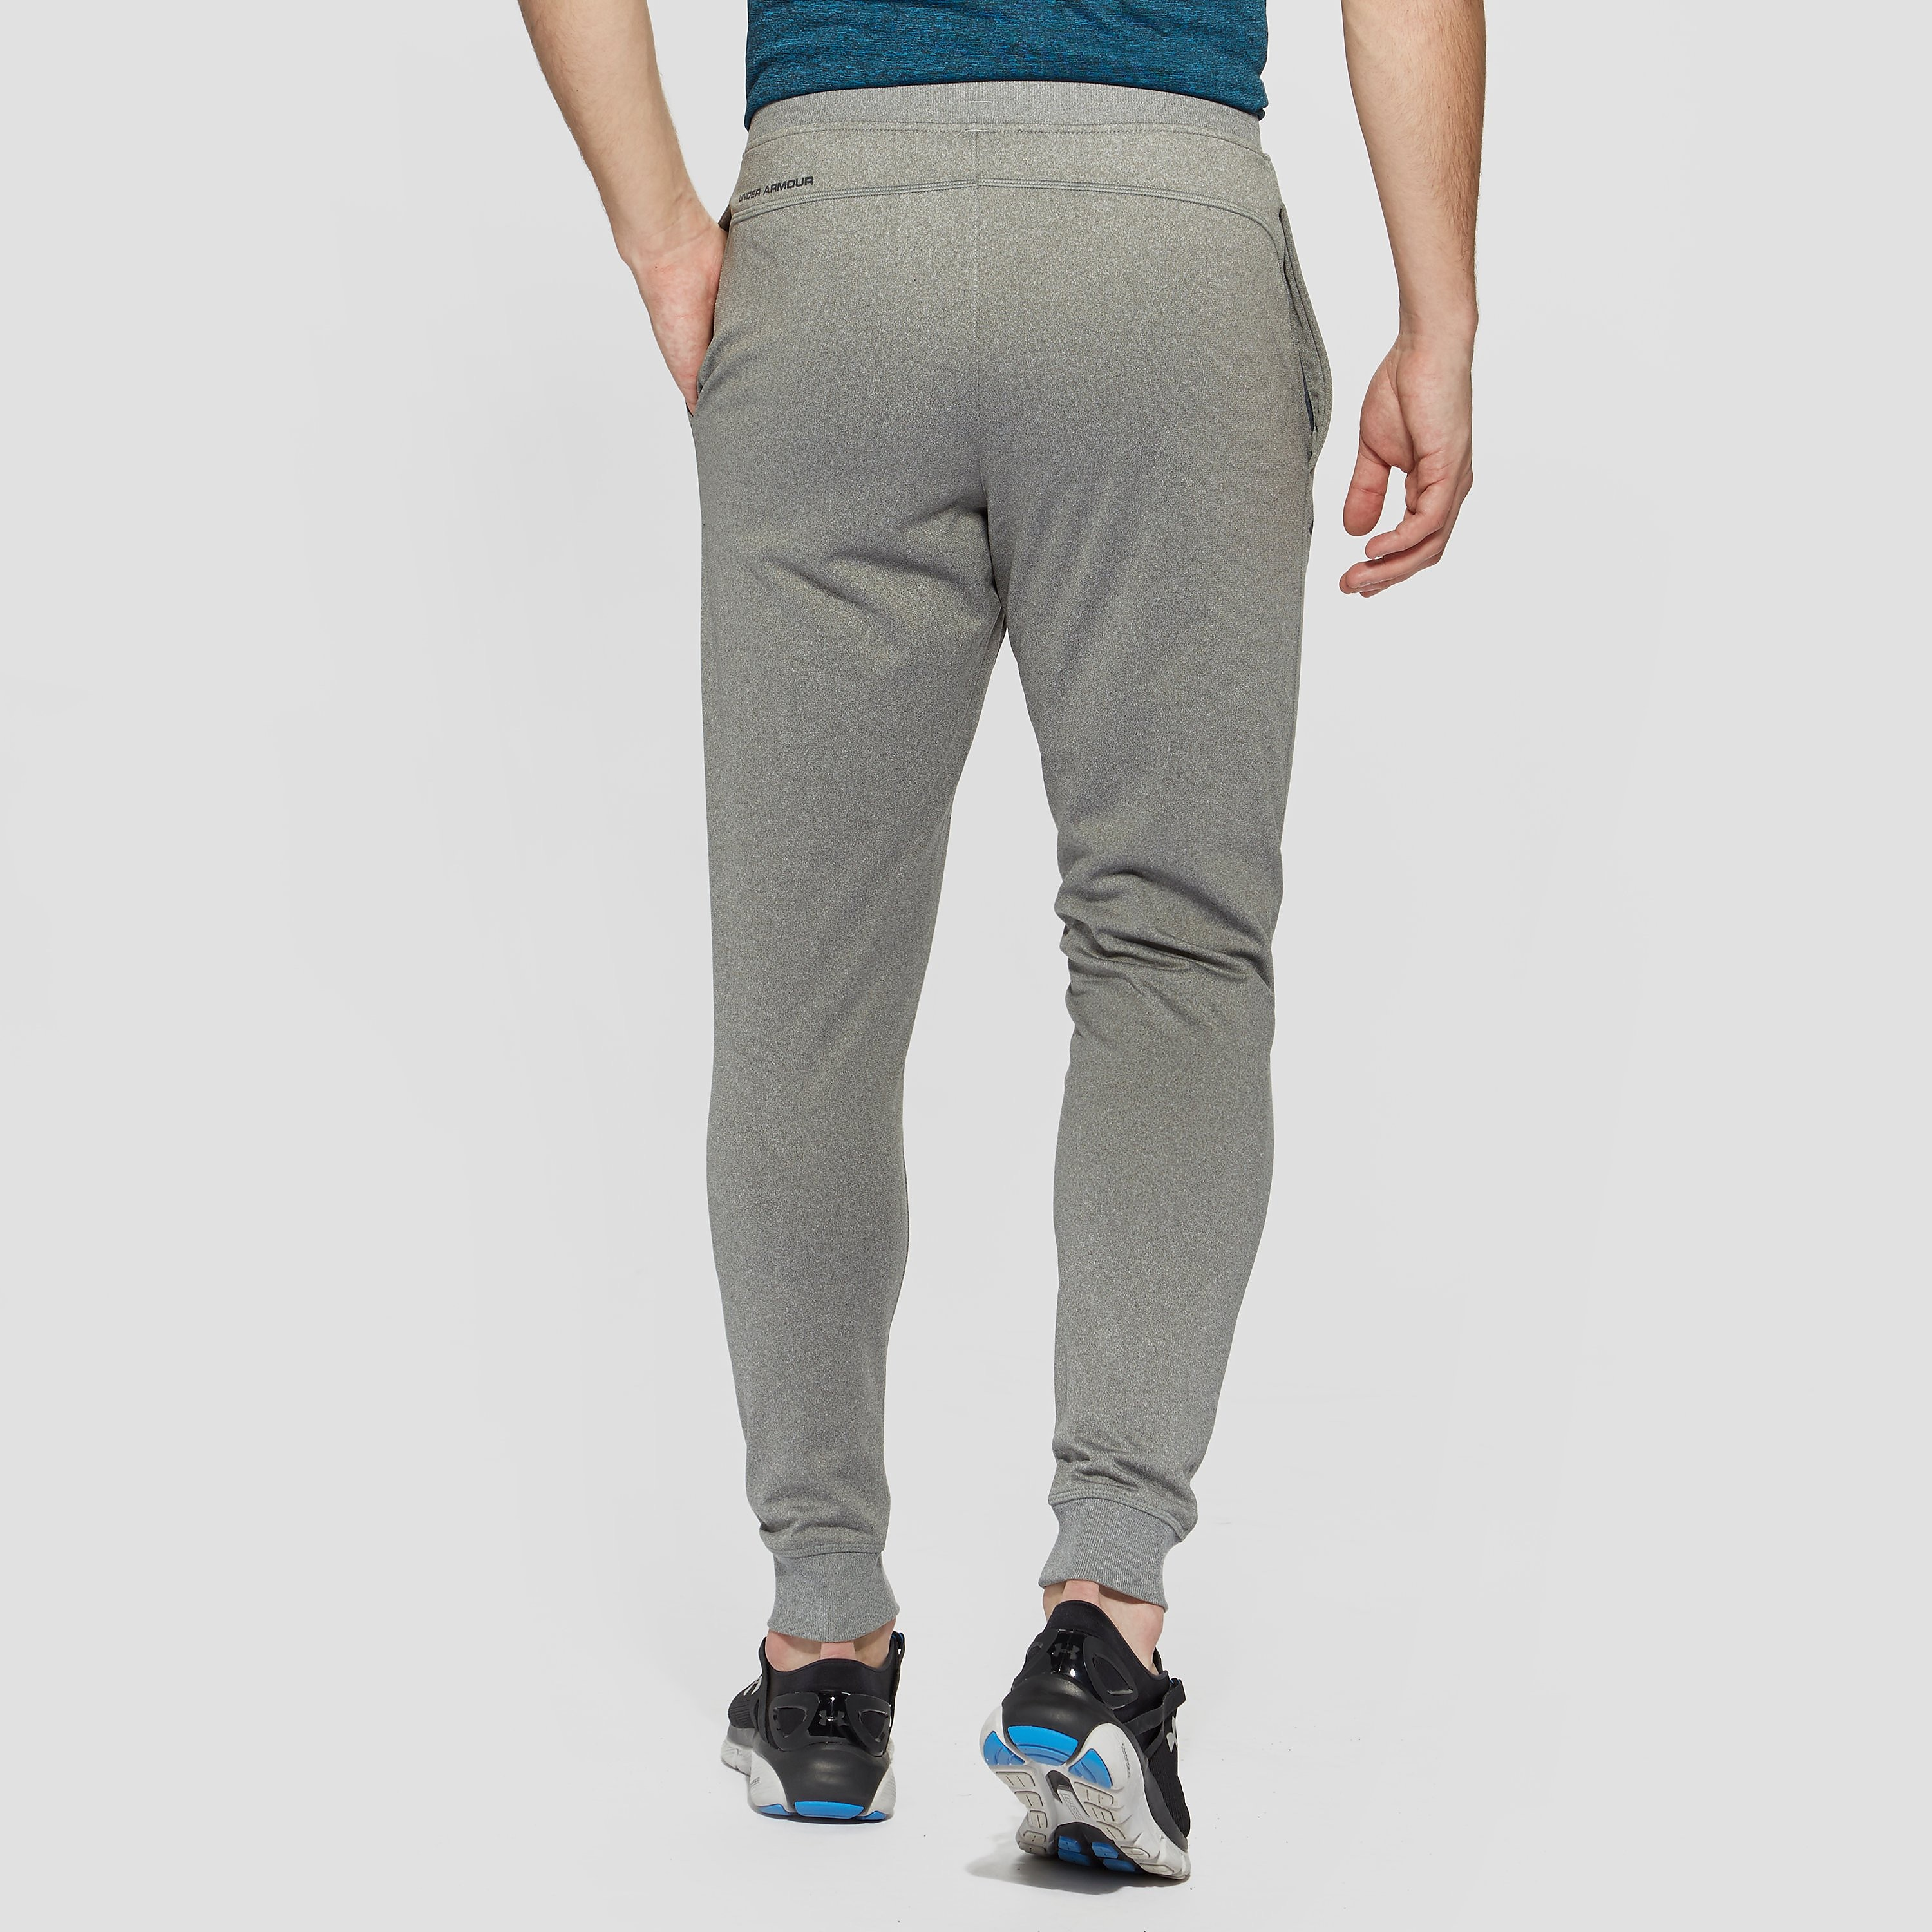 Under Armour Sportstyle Men's Jogger Pants